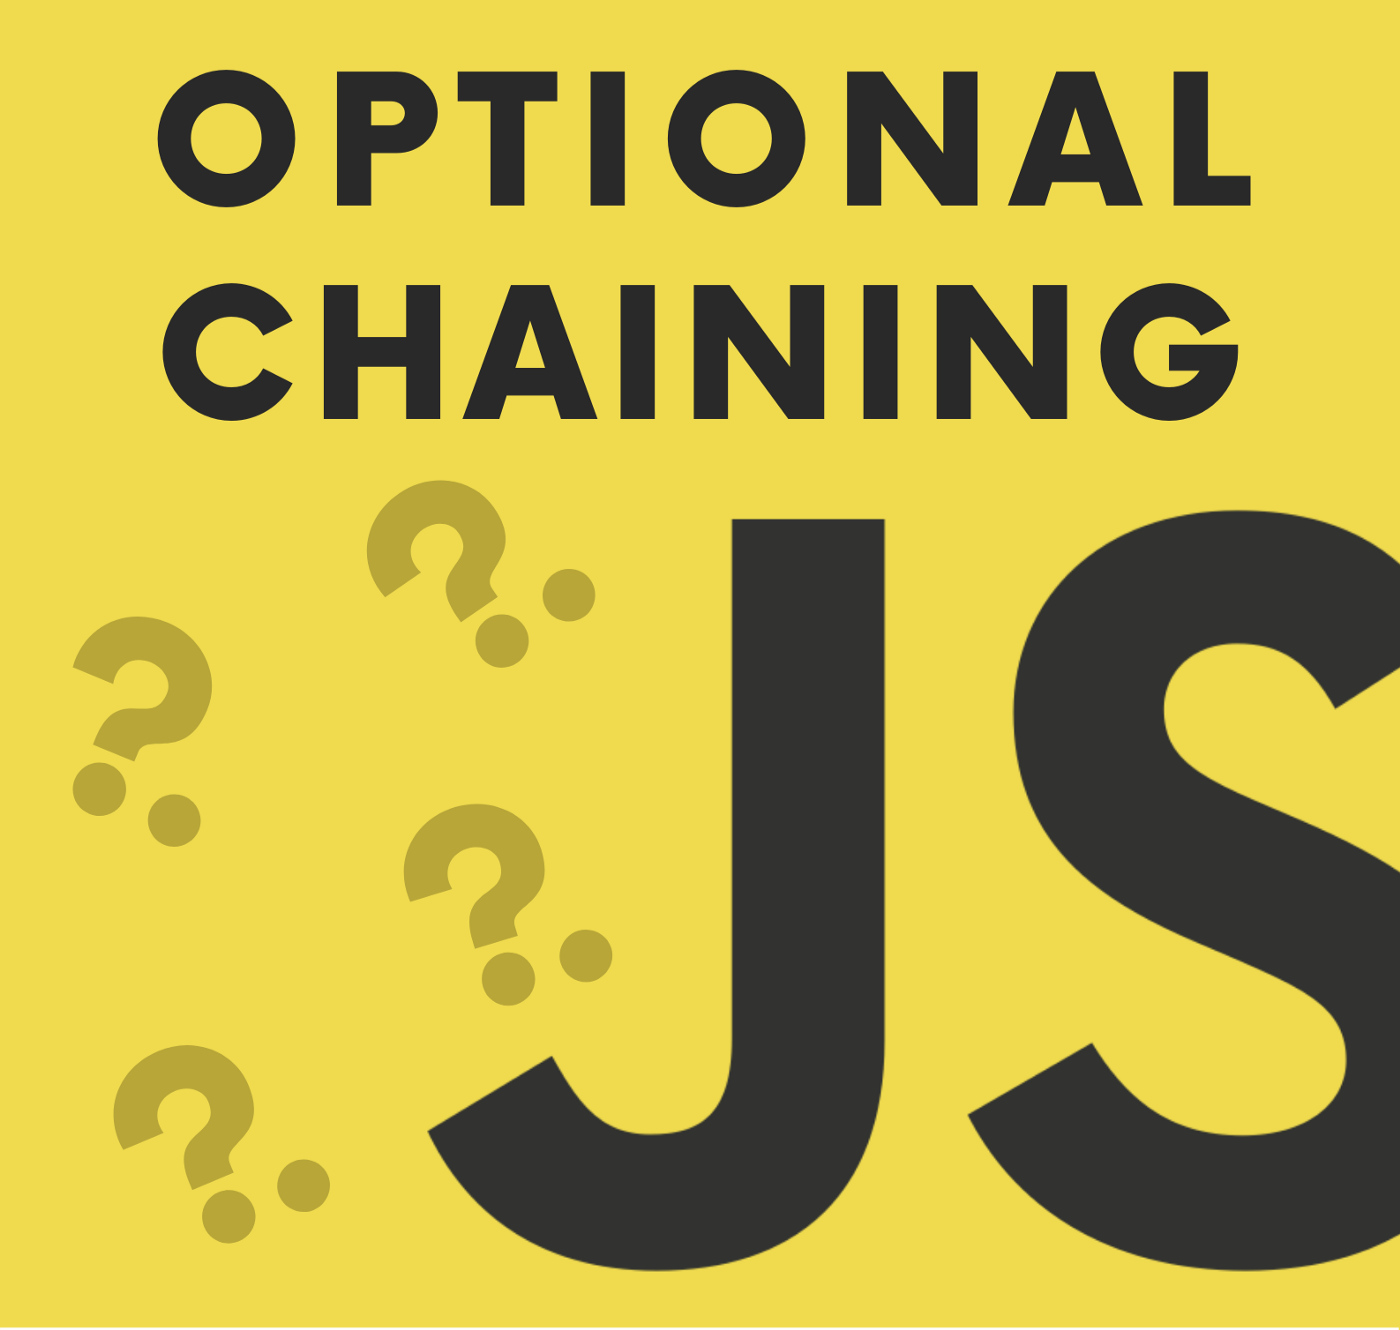 Optional Chaining in ES2020 (ES11) |@thawinwats